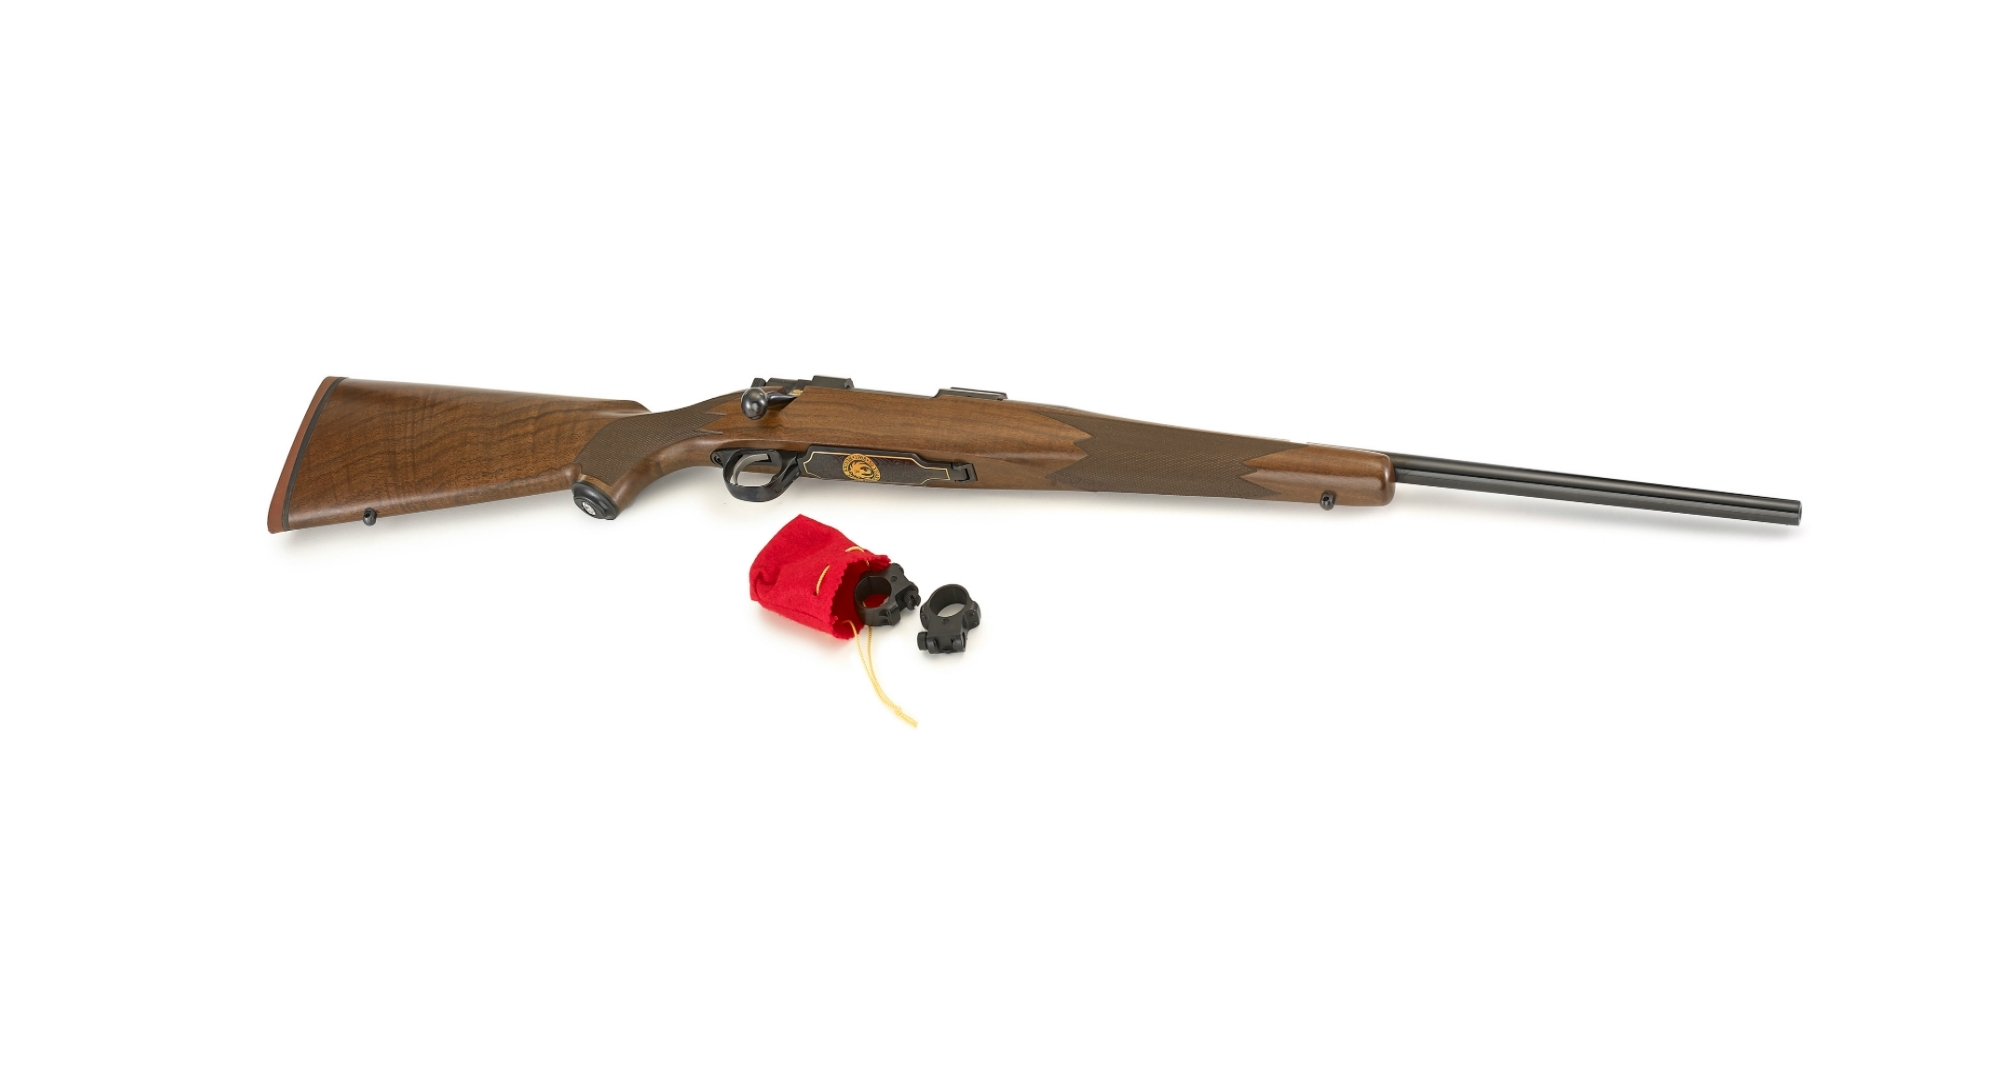 ruger-firearms: Ruger M77 rifle: celebrating 50 years